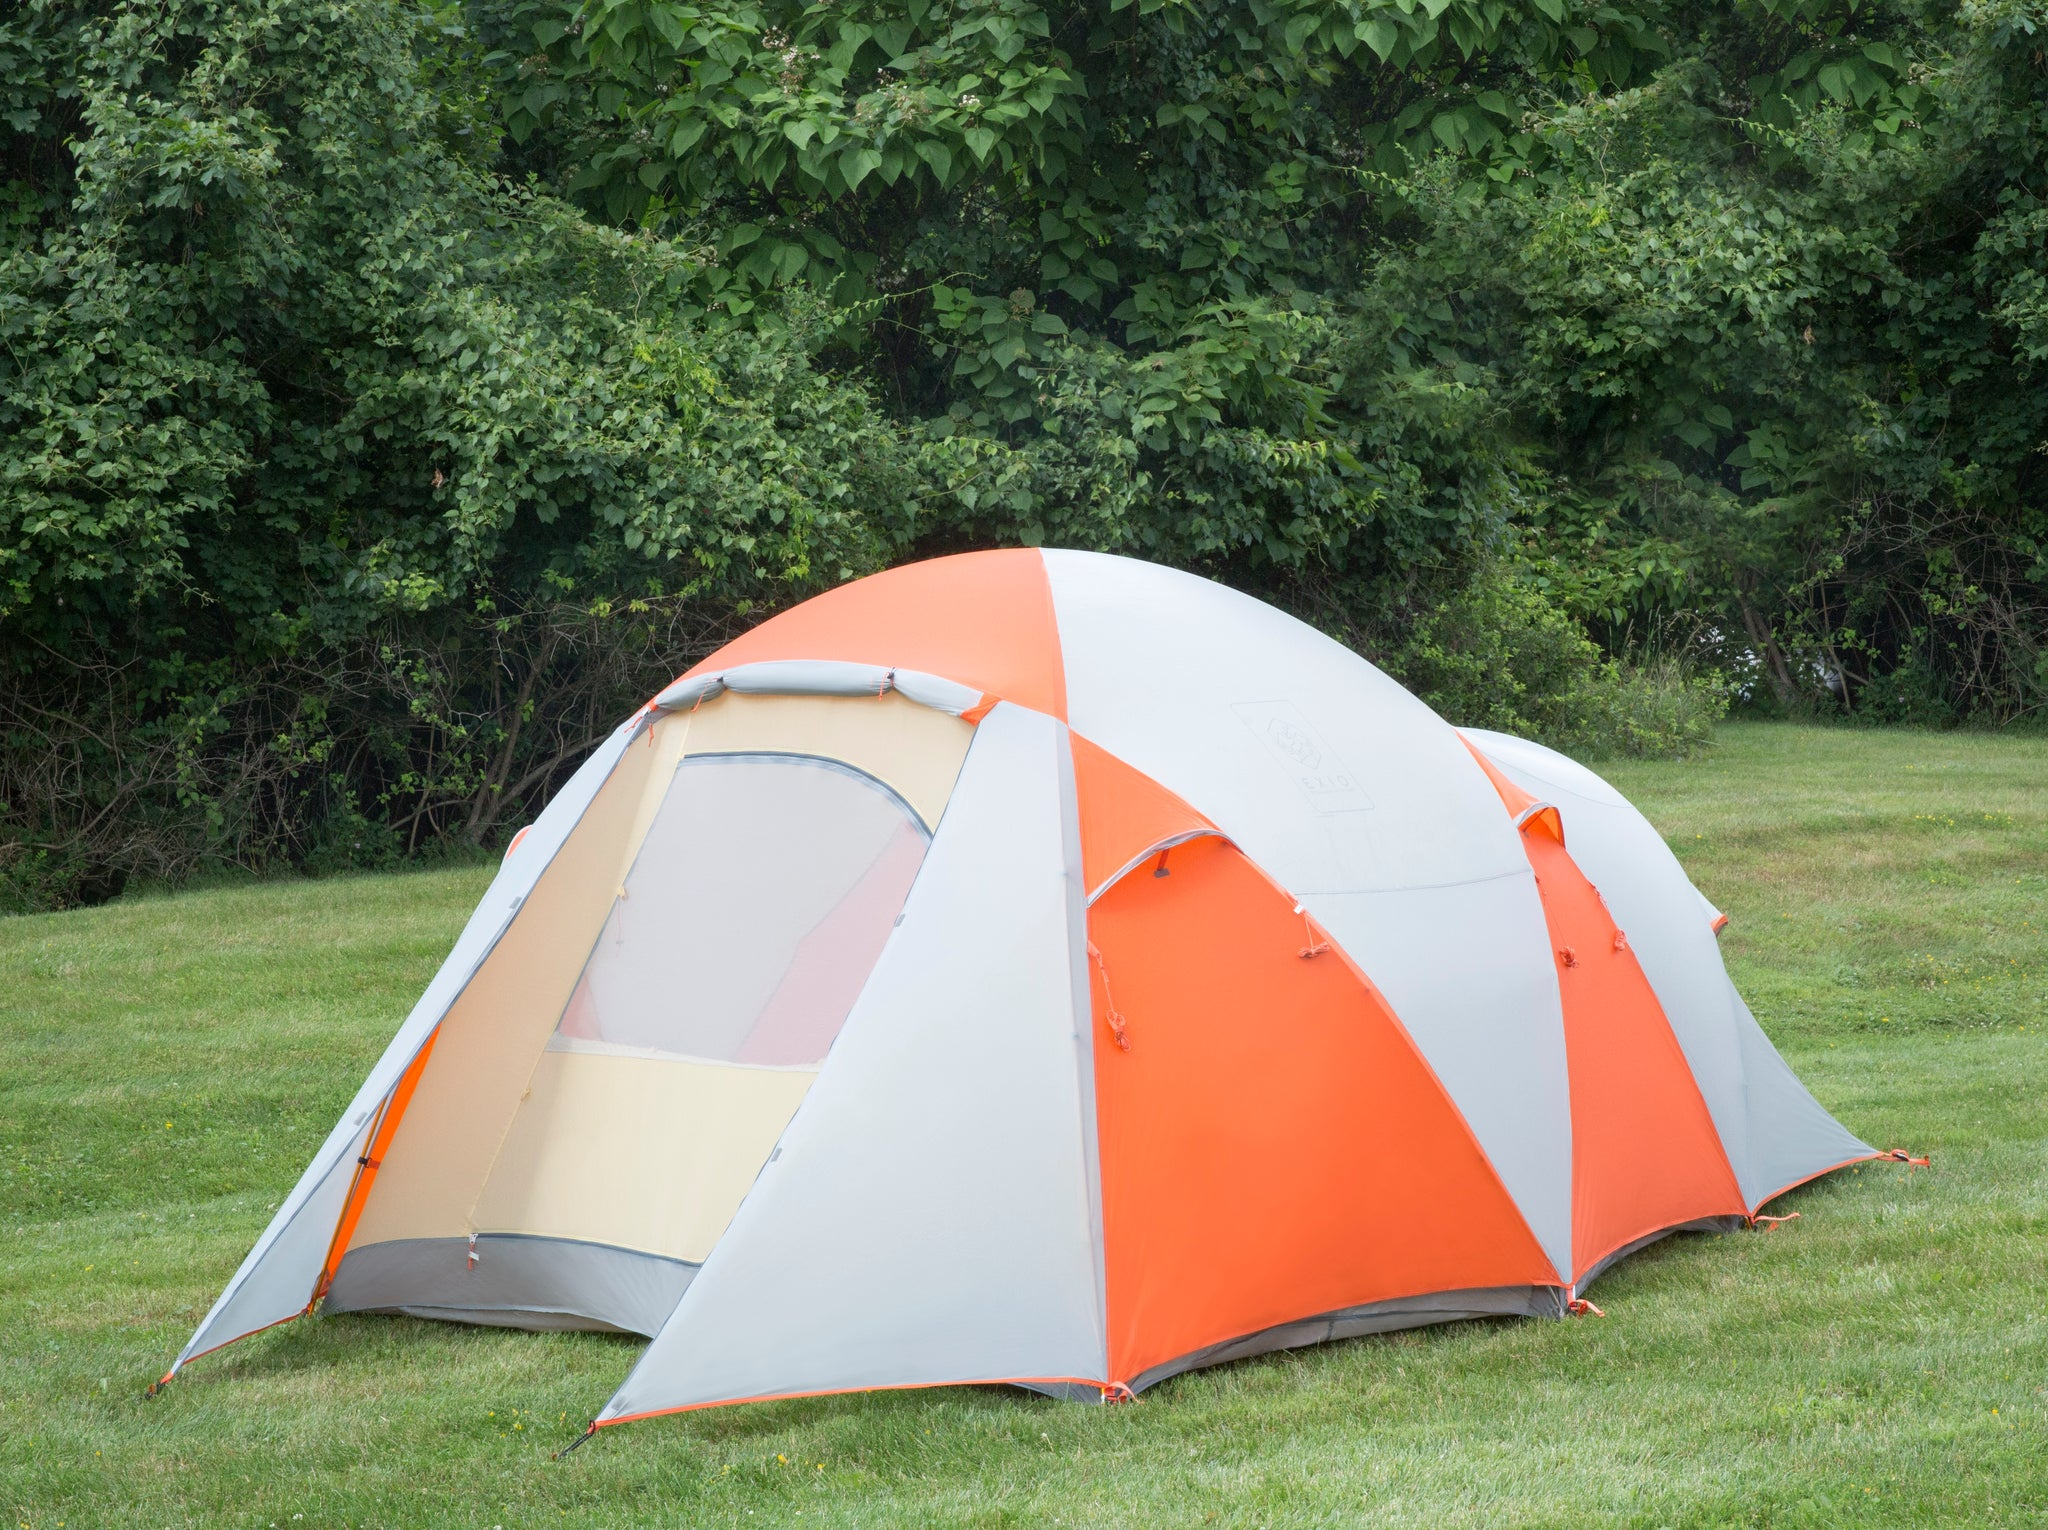 ... 8-Person Compact Backcountry Tent : back country tents - memphite.com